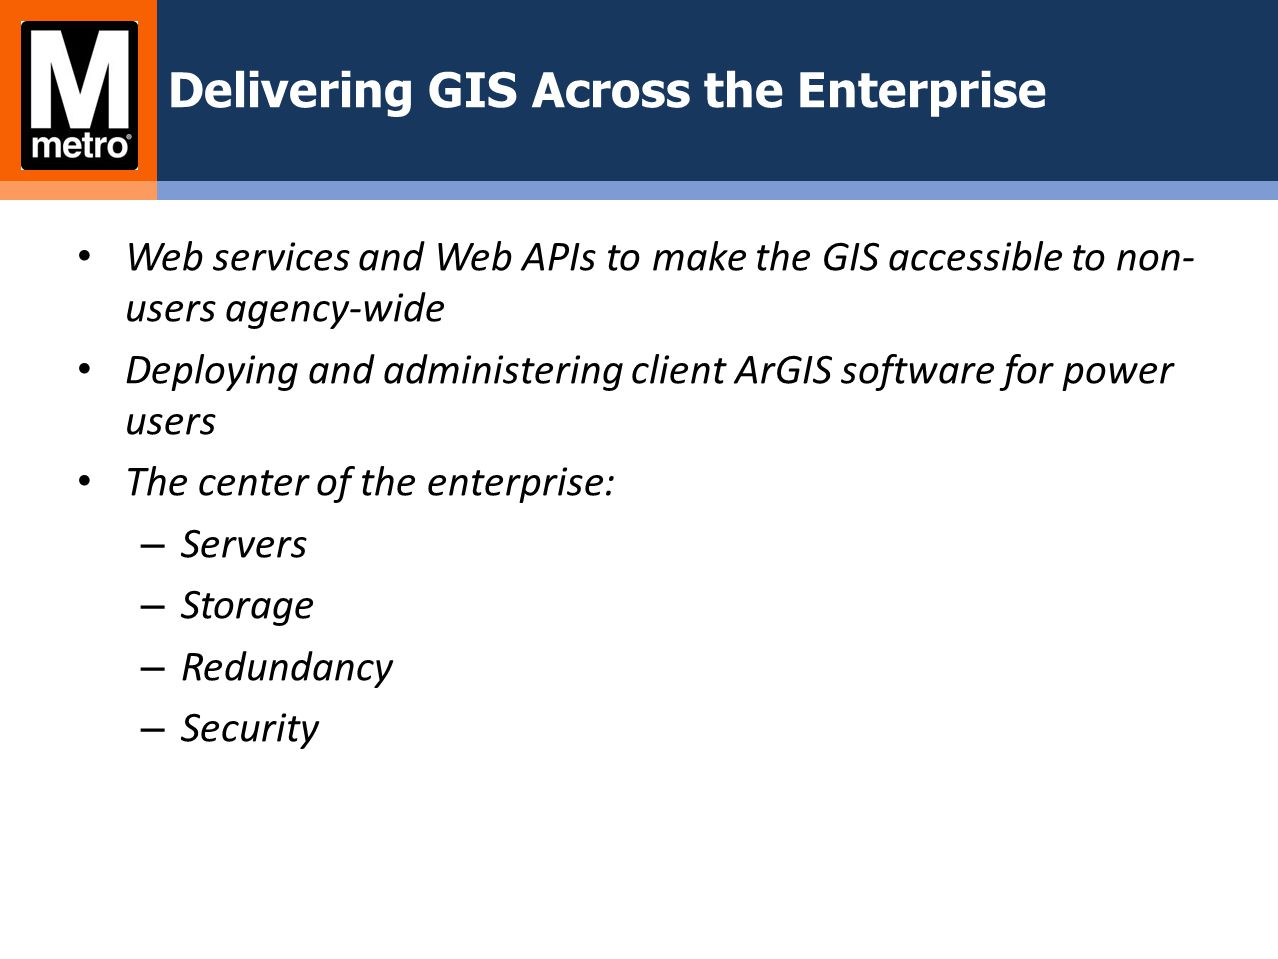 Delivering GIS Across the Enterprise